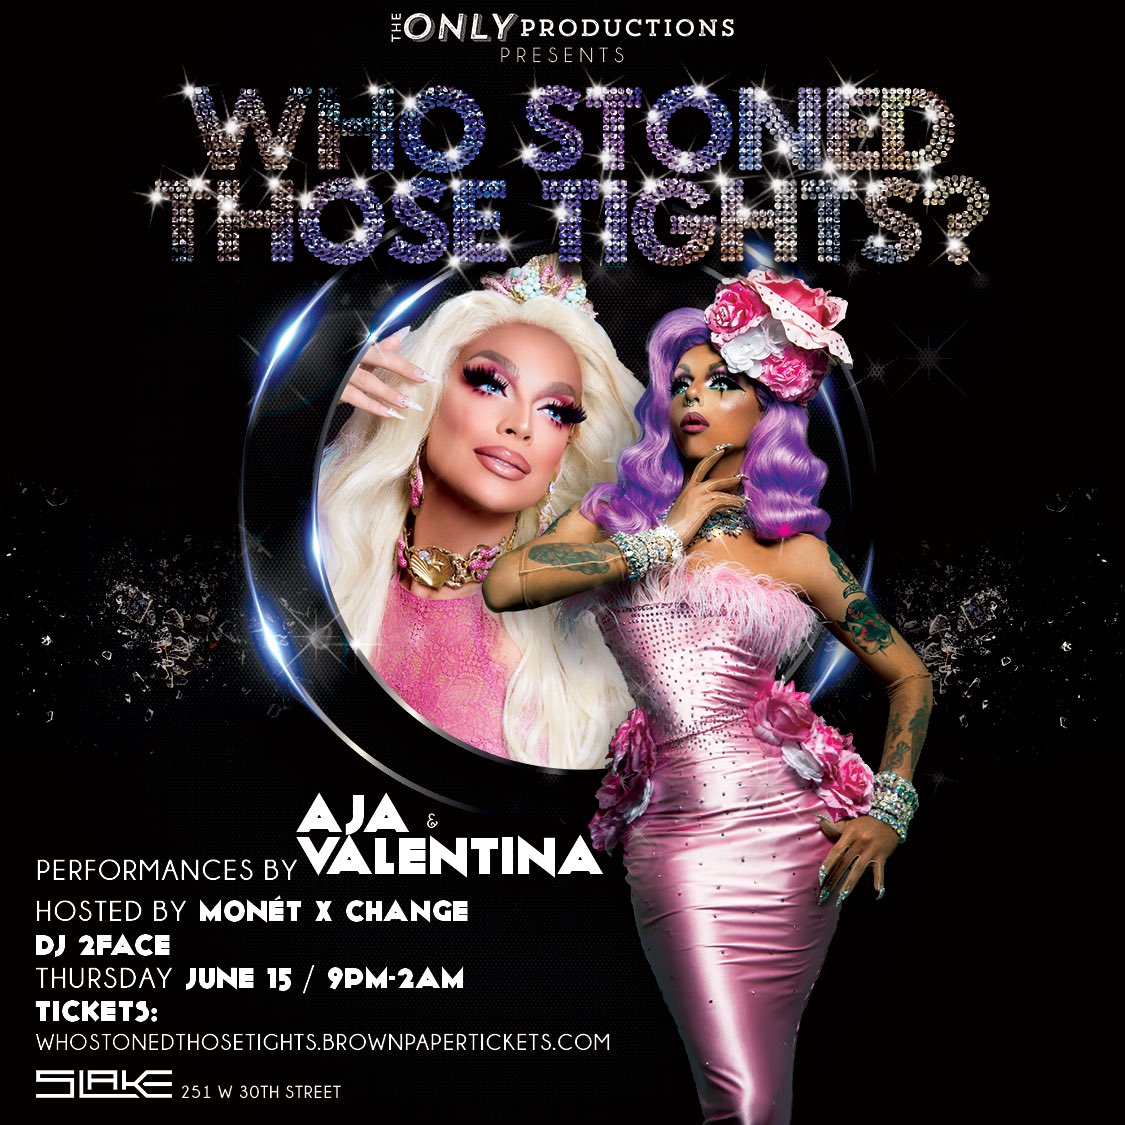 I can't wait to perform with my sister @ajaqueen at @SlakeNYC on 6/15....